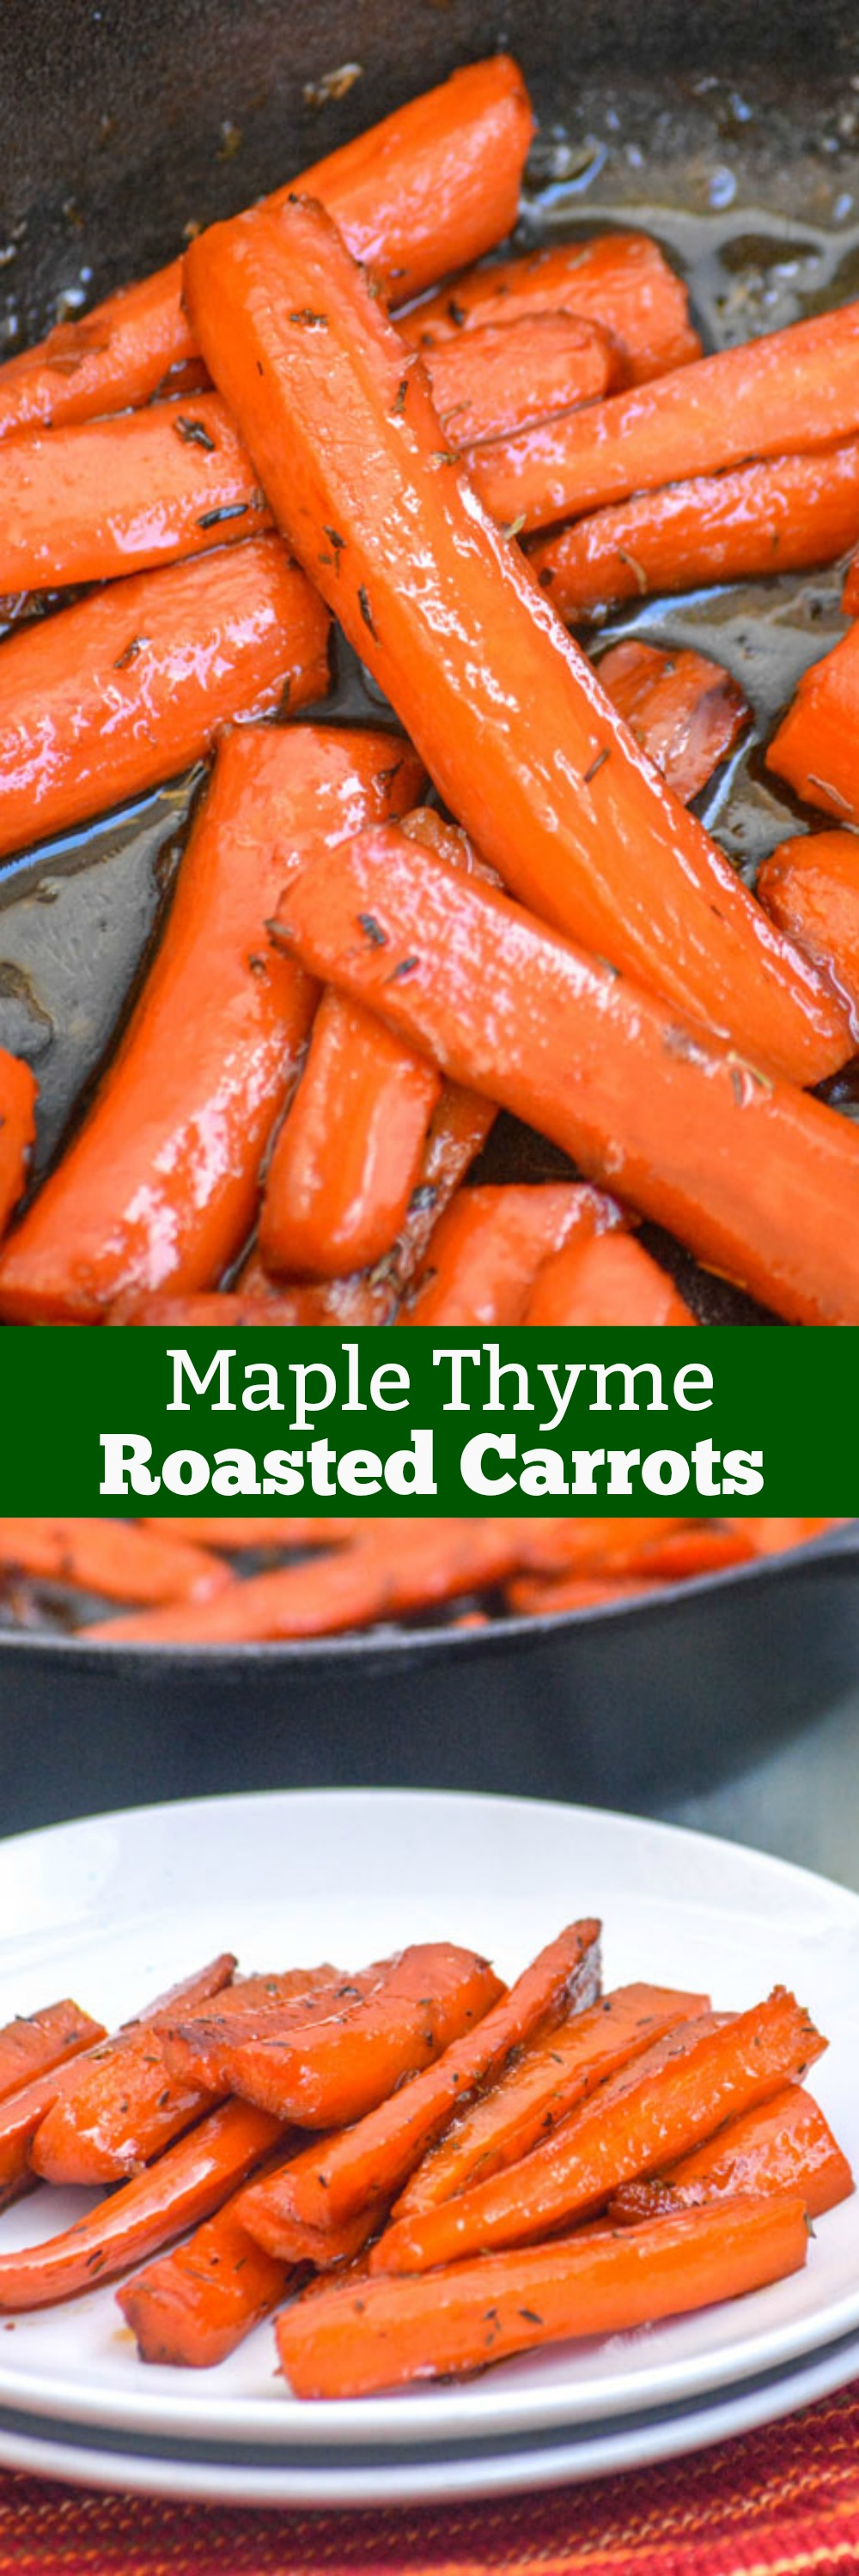 Do you like your vegetables? On the fence? Turn your veggies into something you love with these Maple Glazed Thyme Roasted Carrots. Tender roasted carrots are glazed with smooth maple syrup, sauteed with thyme leaves, and roasted to perfection. It's sure to be your go to side dish for any meal.